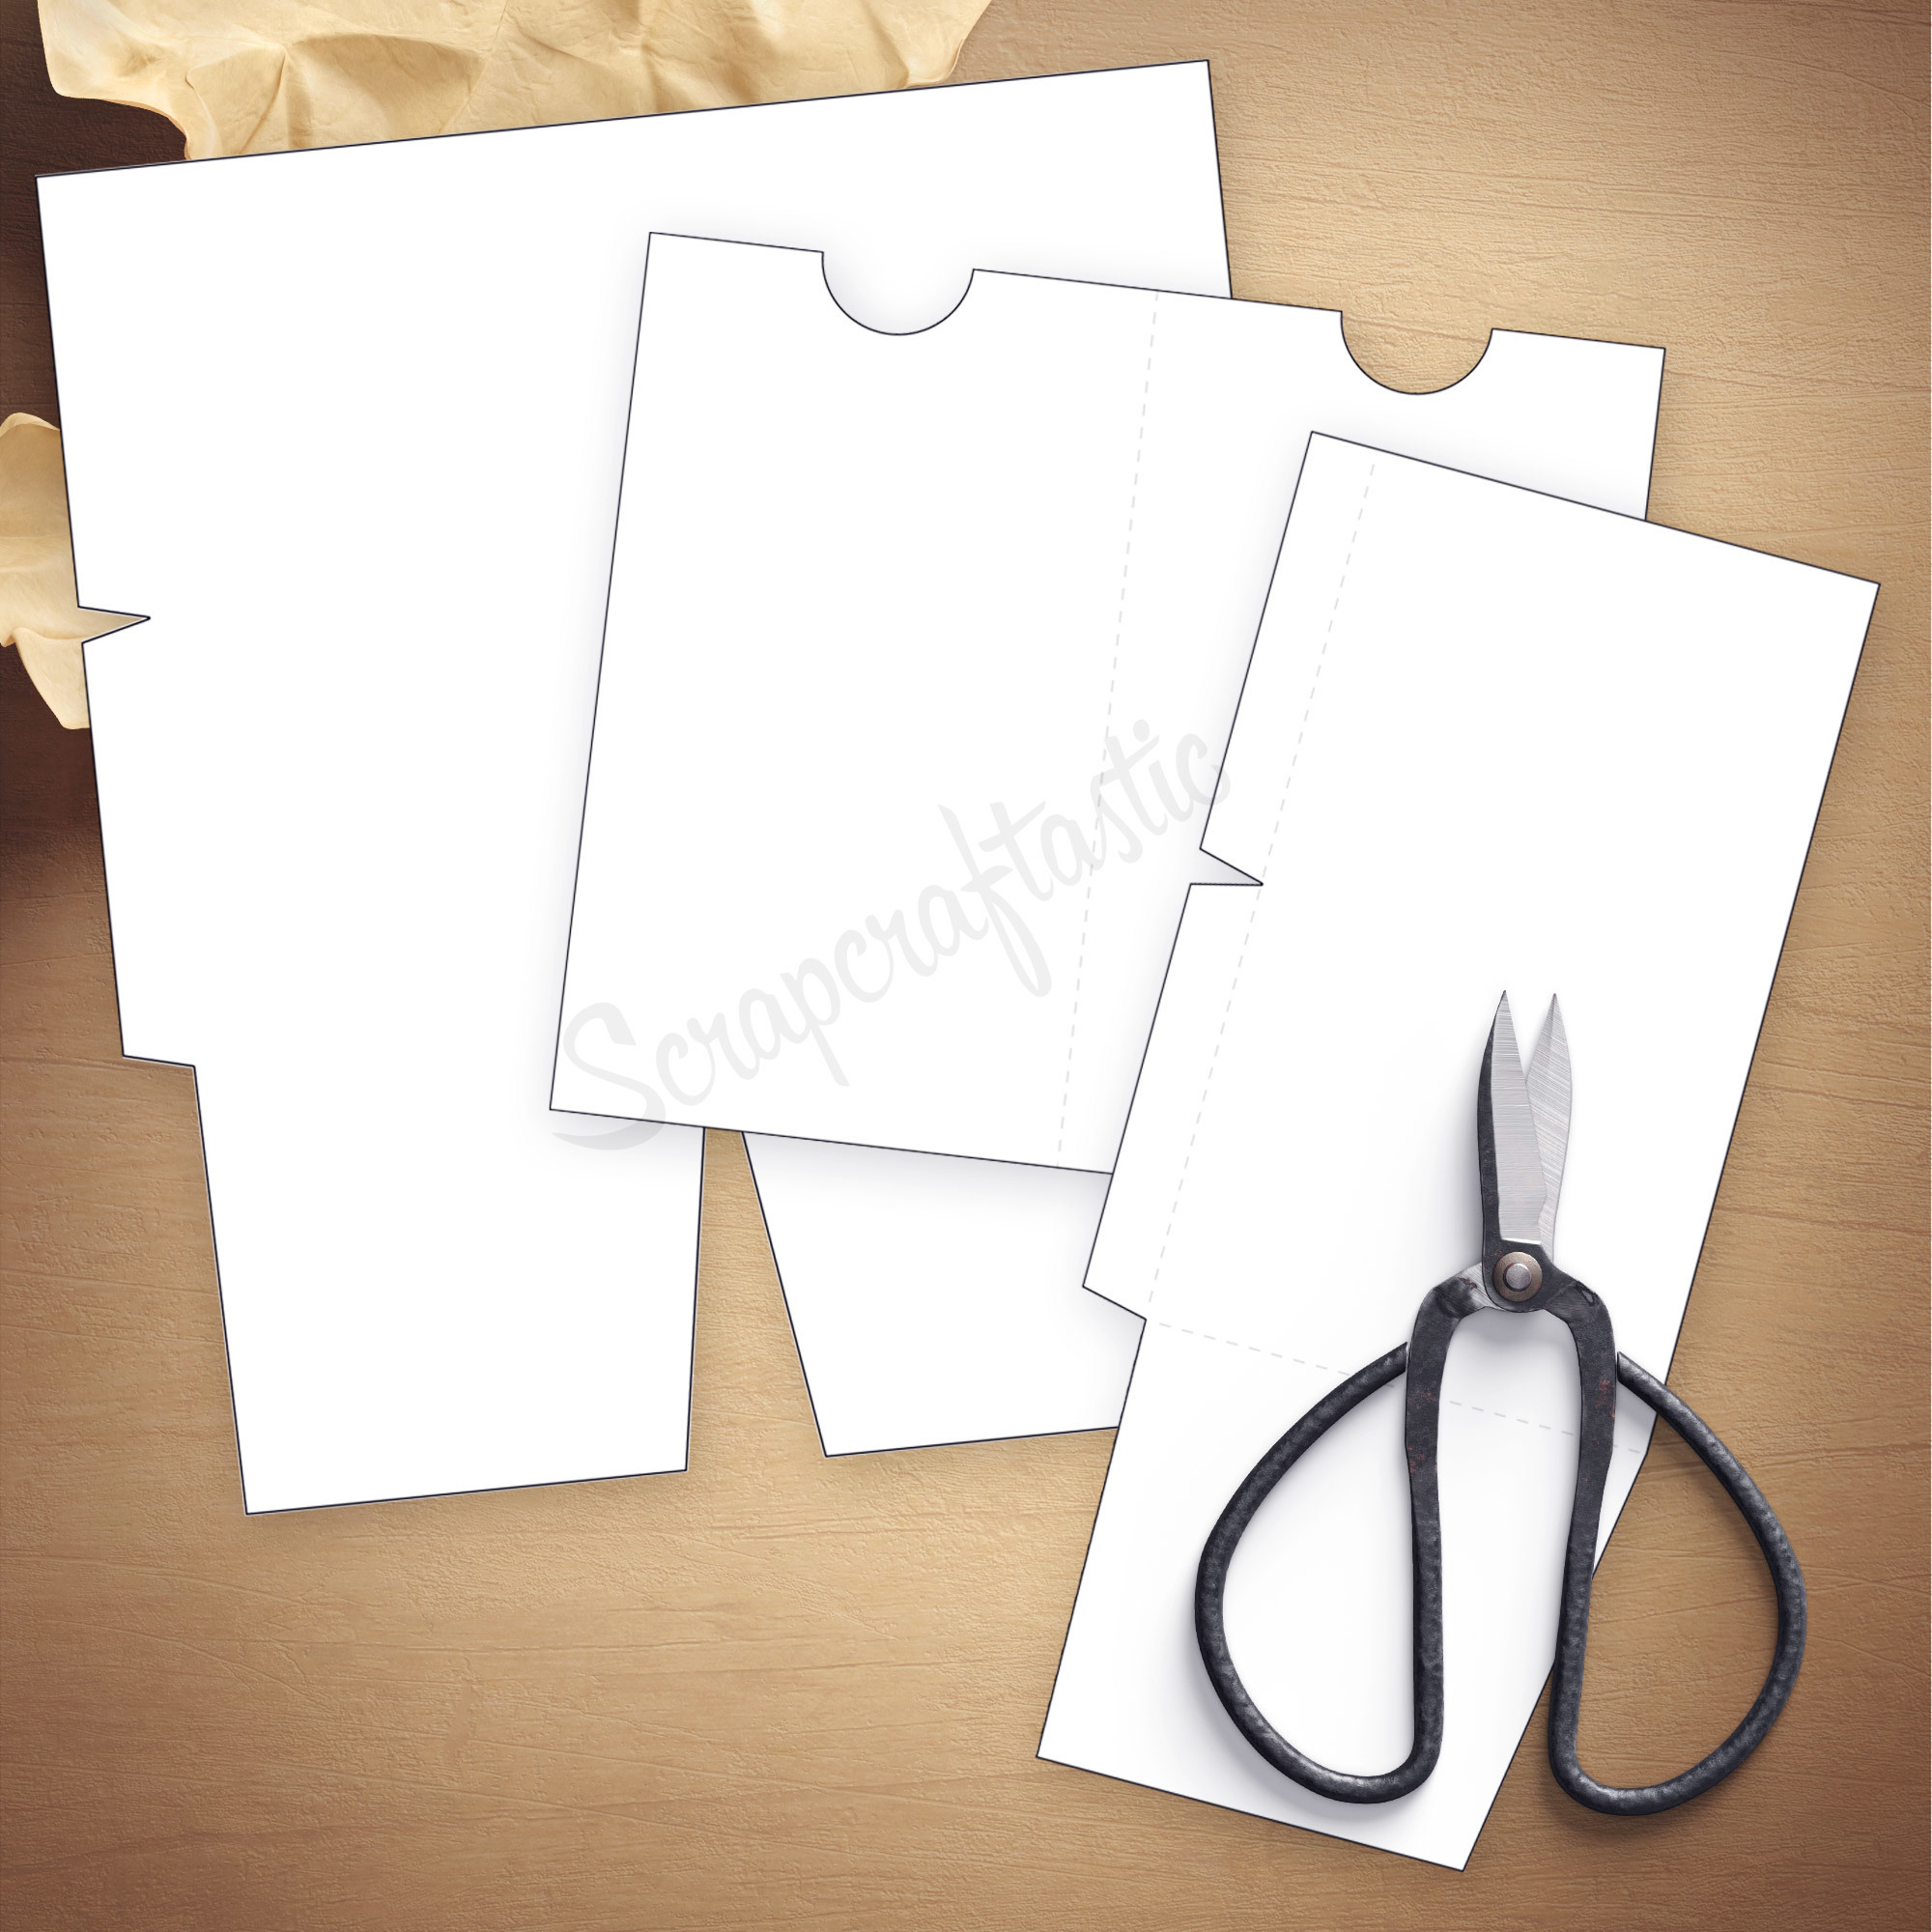 Folder Insert Template for B6 Size Traveler's Notebook 07007